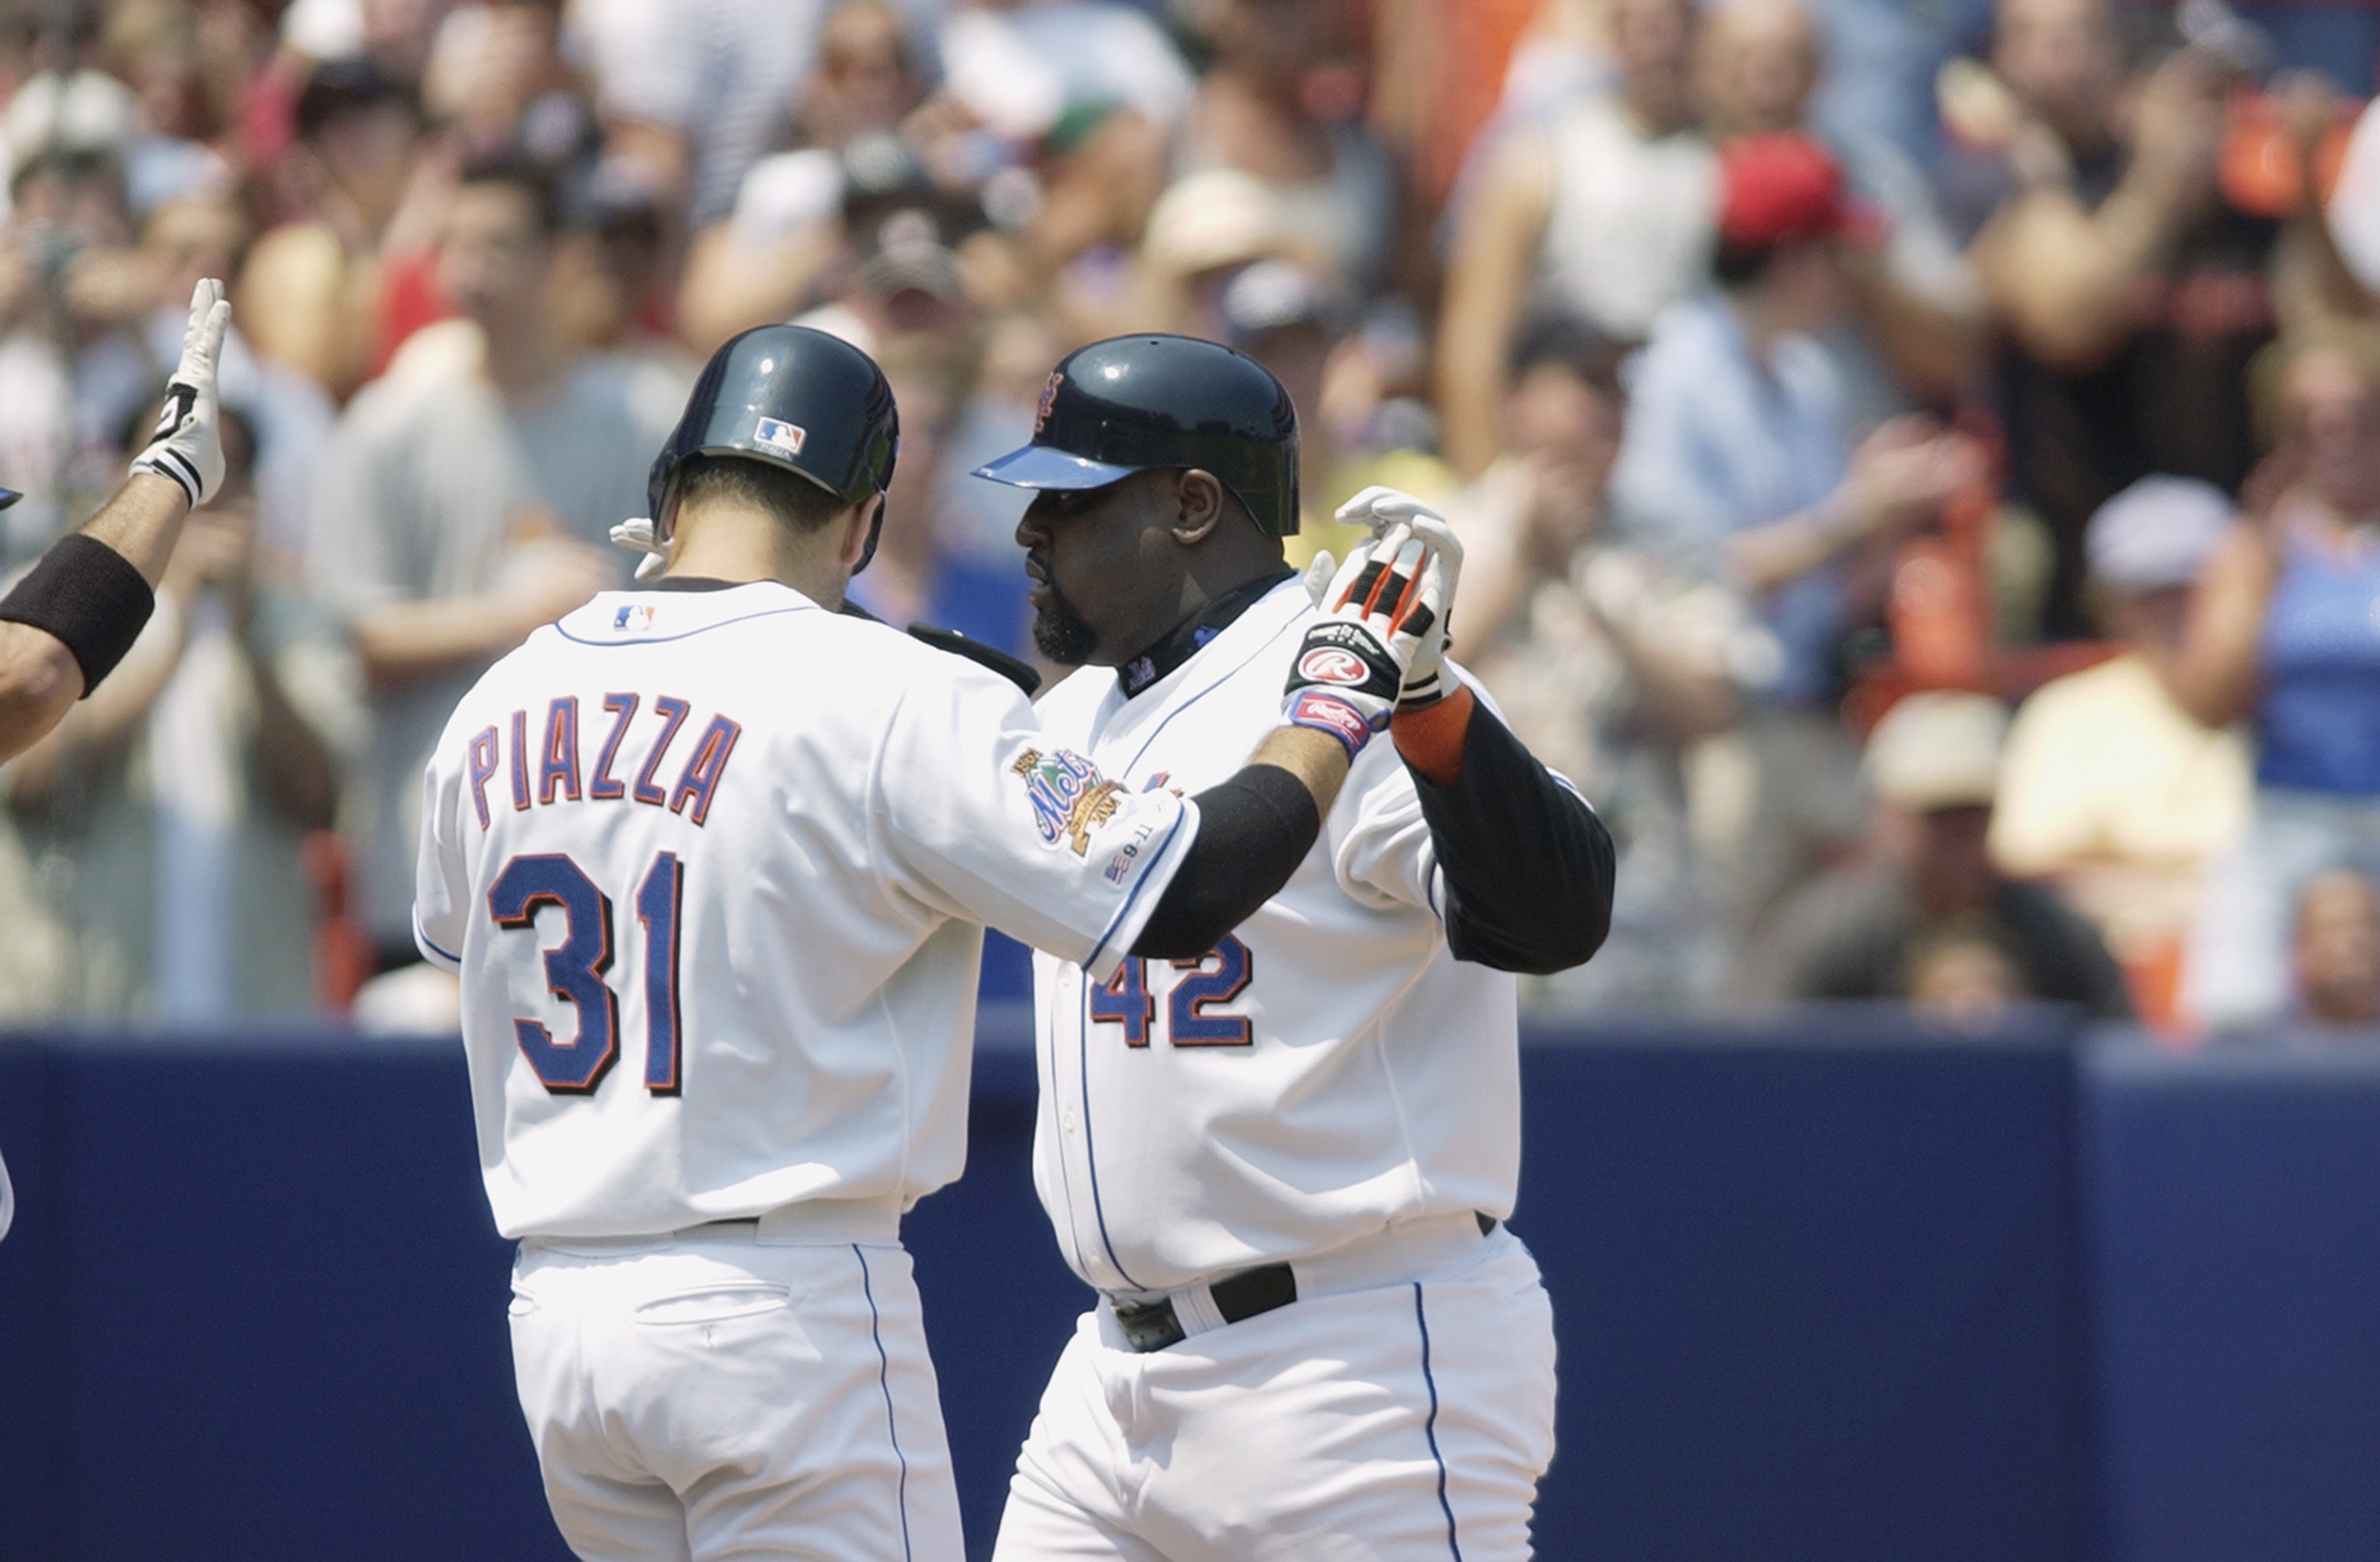 FLUSHING, NY - AUGUST 4:  First baseman Mo Vaughn #42 of the New York Mets receives congratulations from catcher Mike Piazza #31 after hitting a two-run home run during the MLB game against the Arizona Diamondbacks on August 4, 2002 at Shea Stadium in Flu